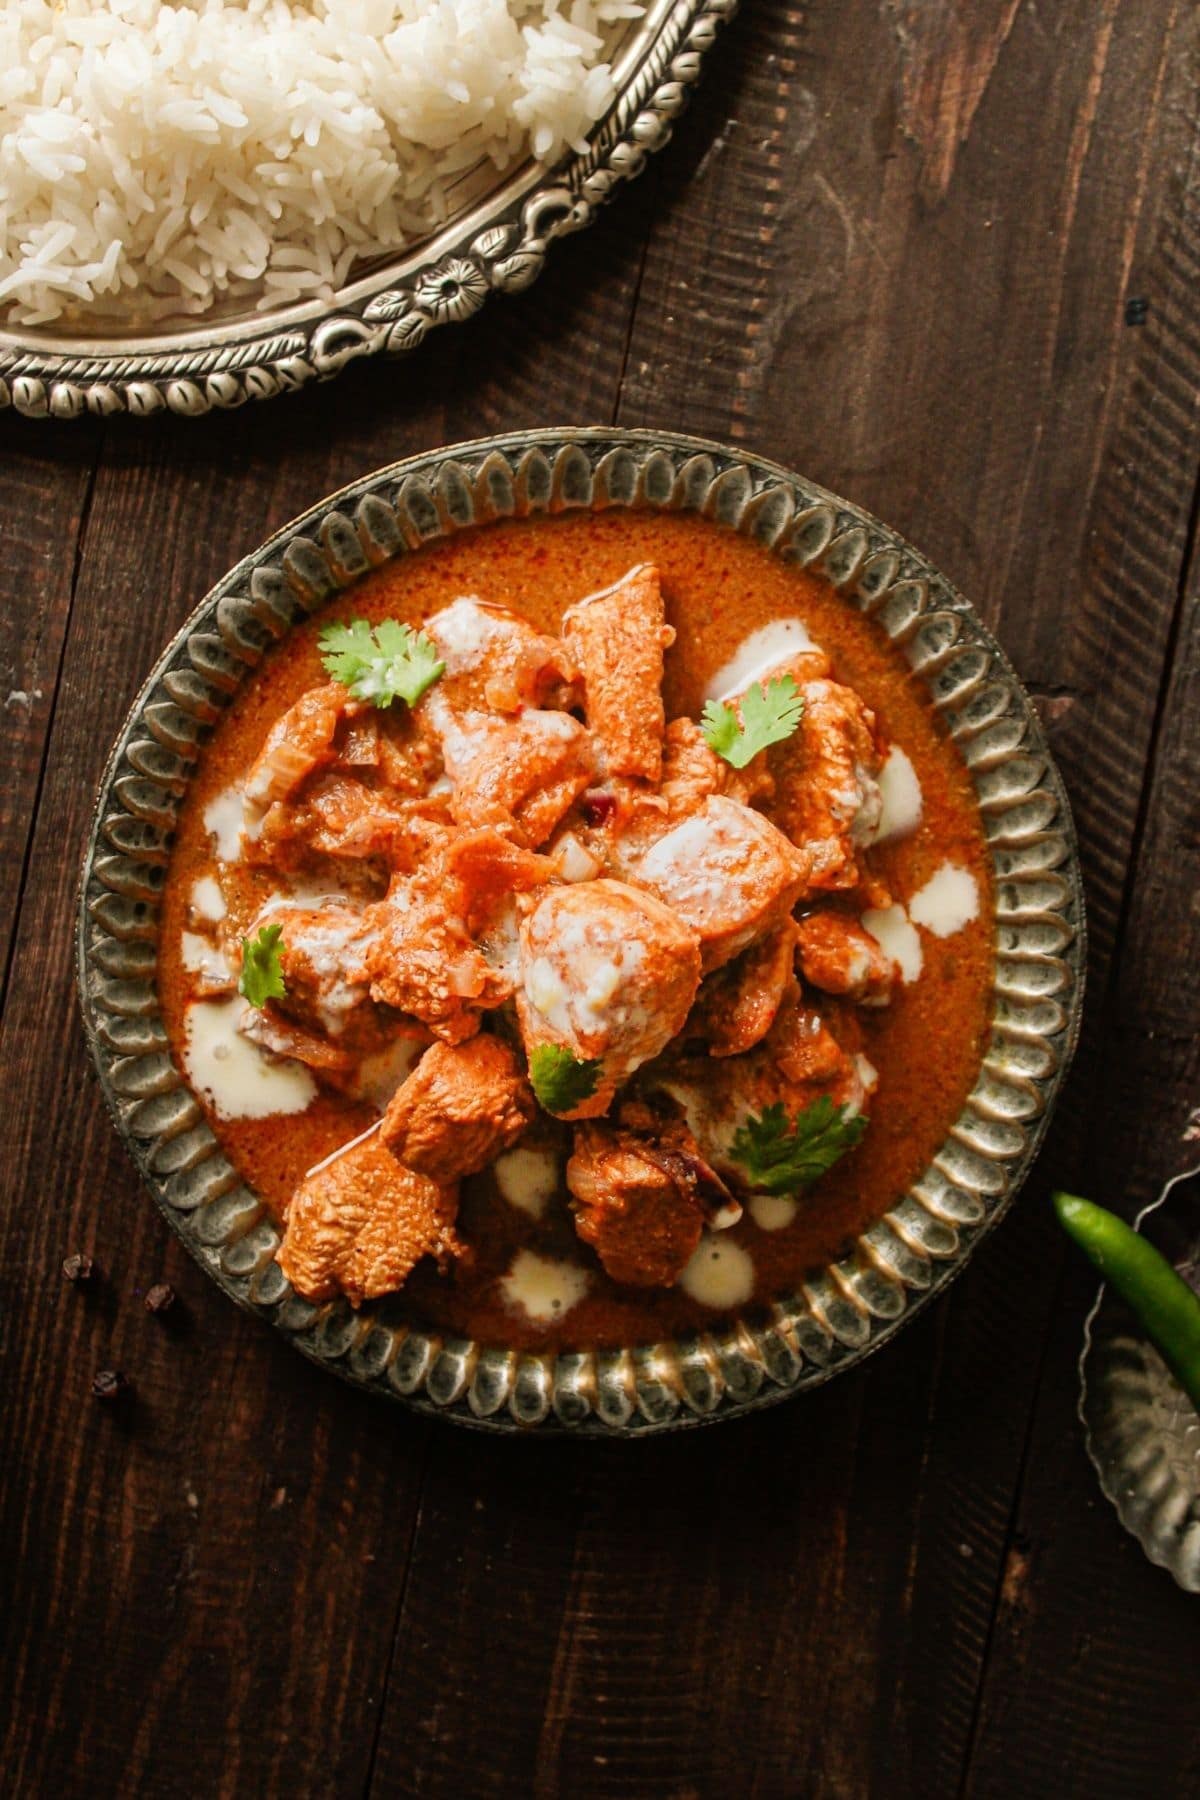 Image taken from above green bowl of chicken vindaloo next to bowl of steamed white rice